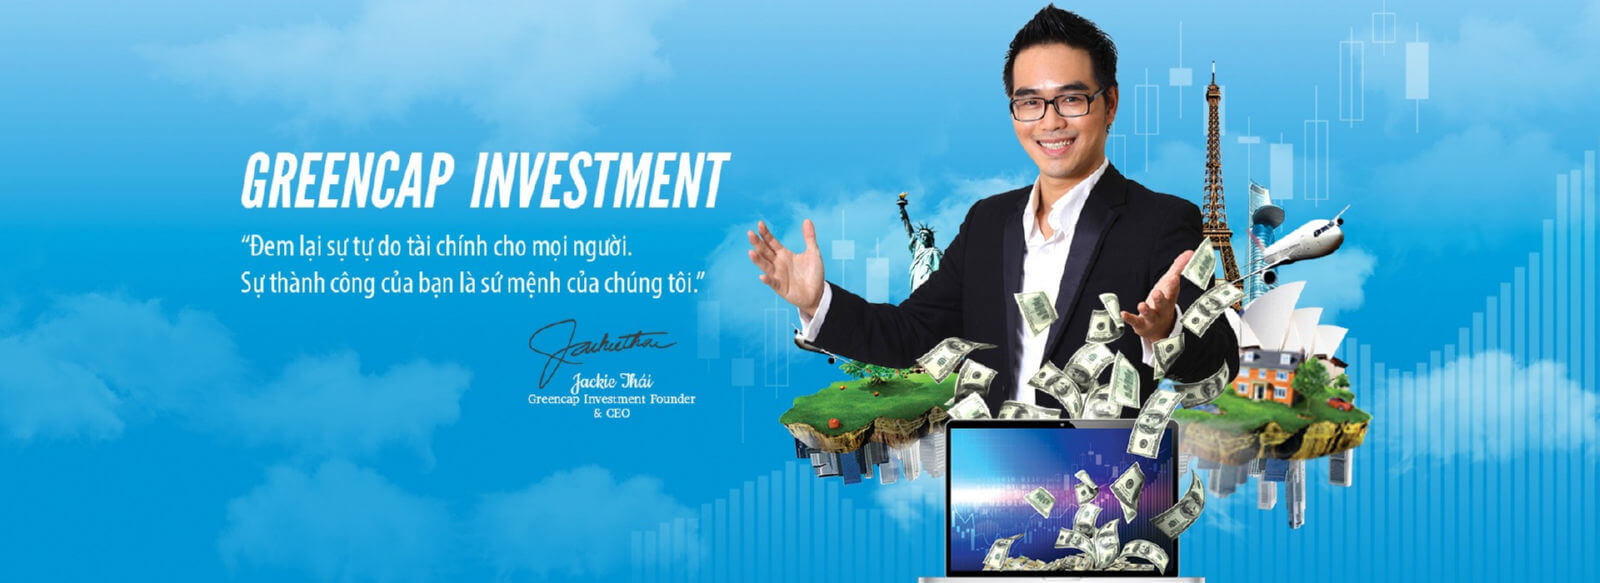 Greencap Investment